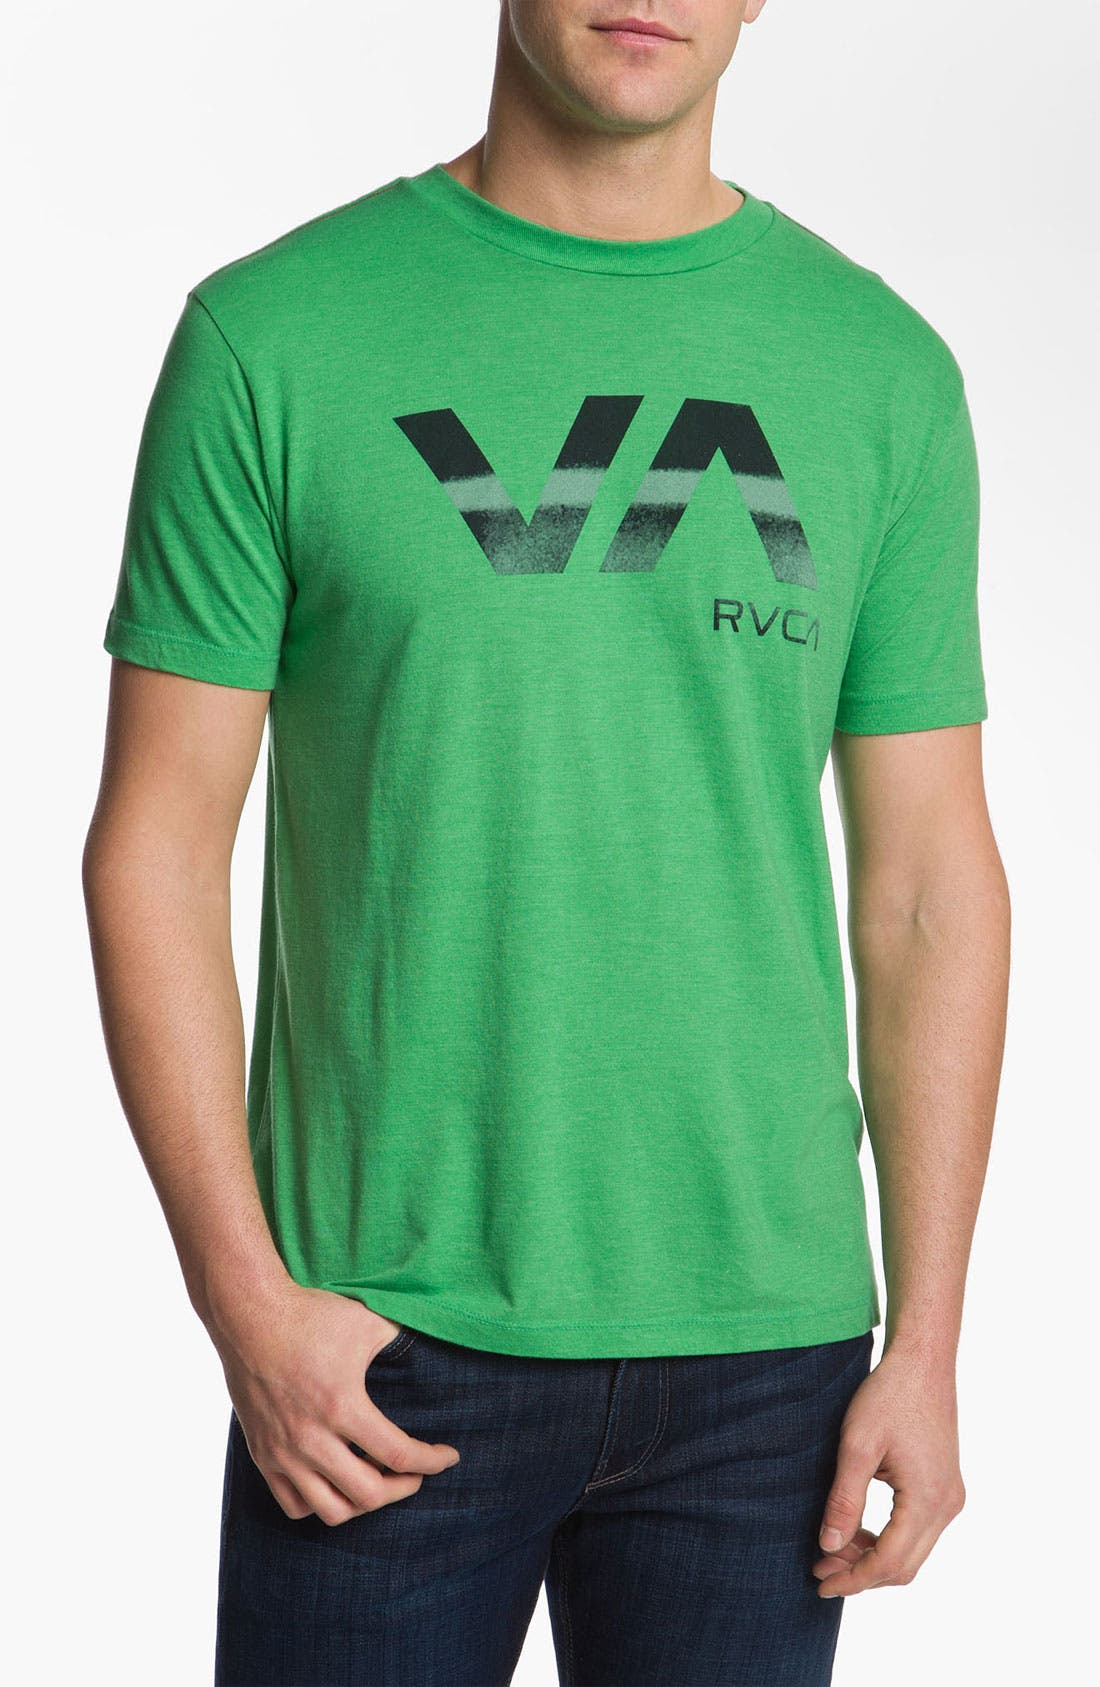 Main Image - RVCA 'Stressed VA' T-Shirt